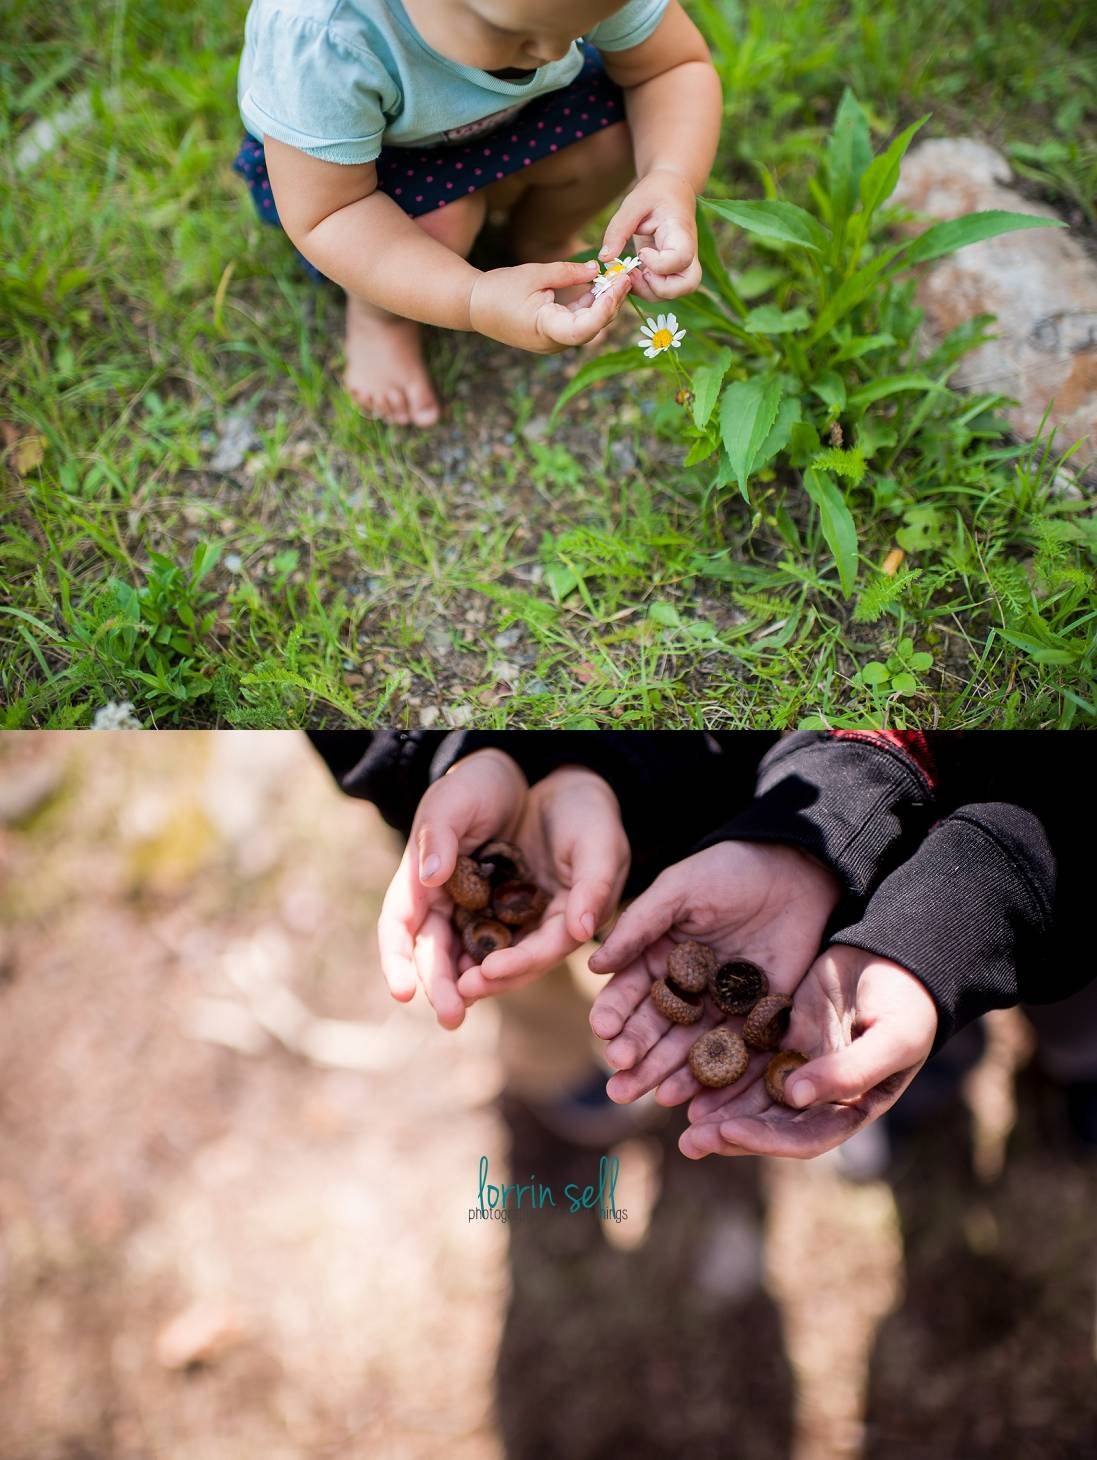 great tips for remembering to take pictures of the details of childhood